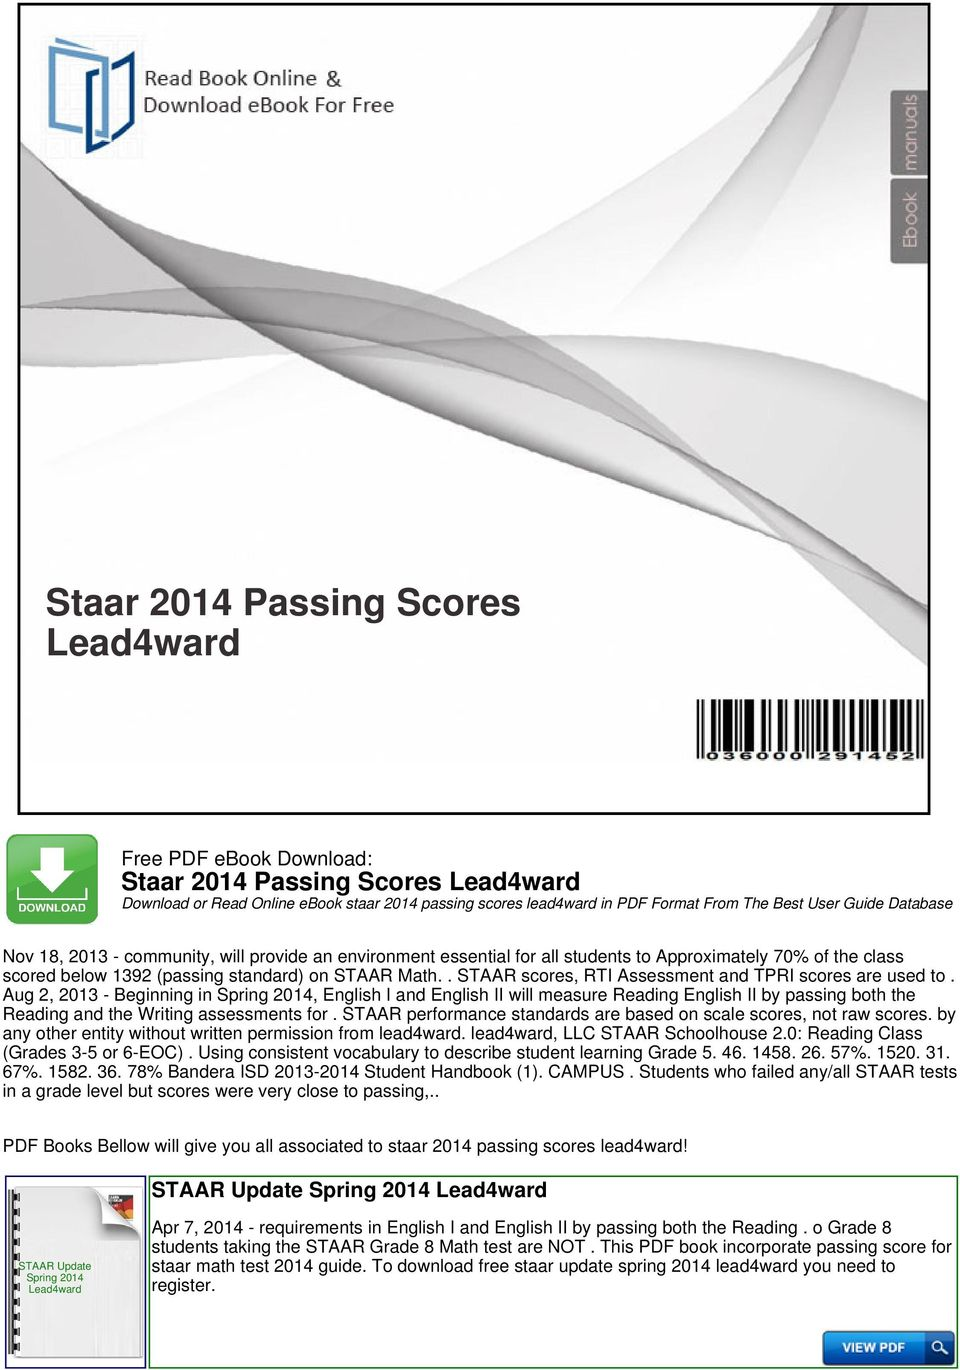 Staar 2014 Passing Scores Lead4ward Pdf